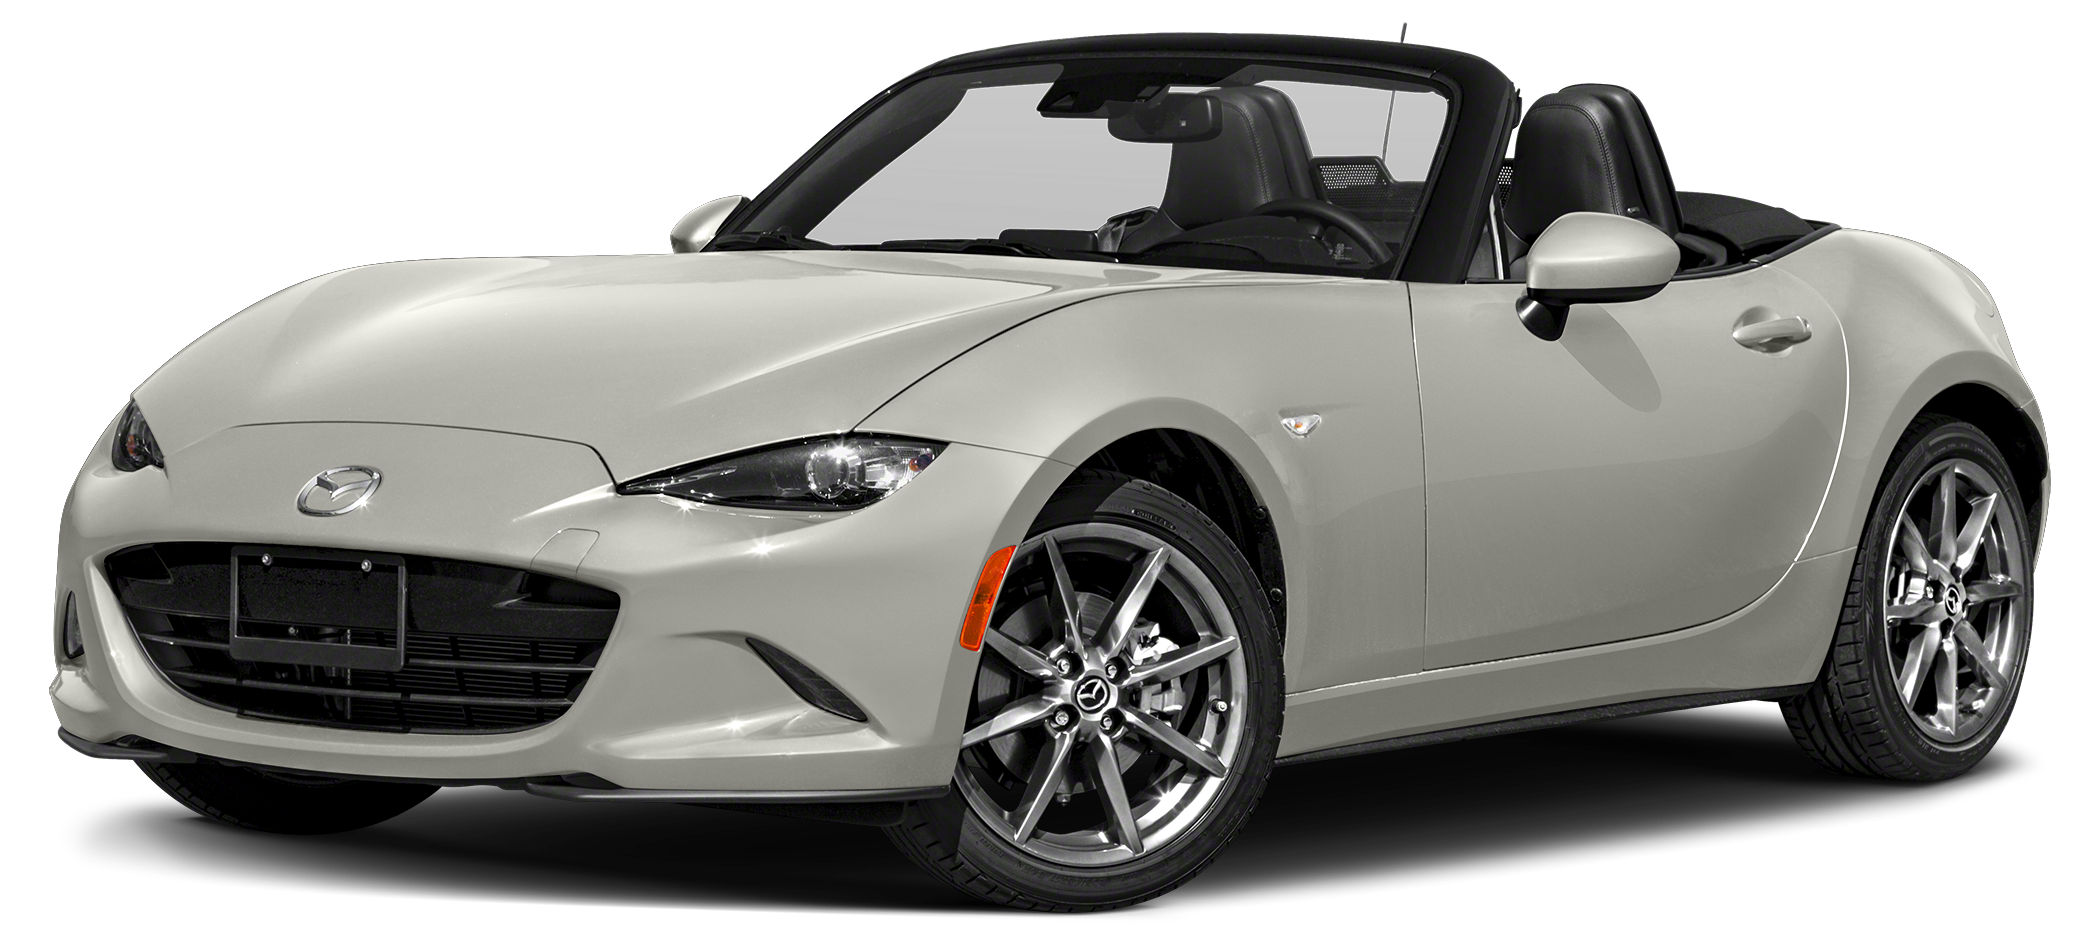 2017 mazda mx 5 incentives specials offers in chilliwack bc. Black Bedroom Furniture Sets. Home Design Ideas